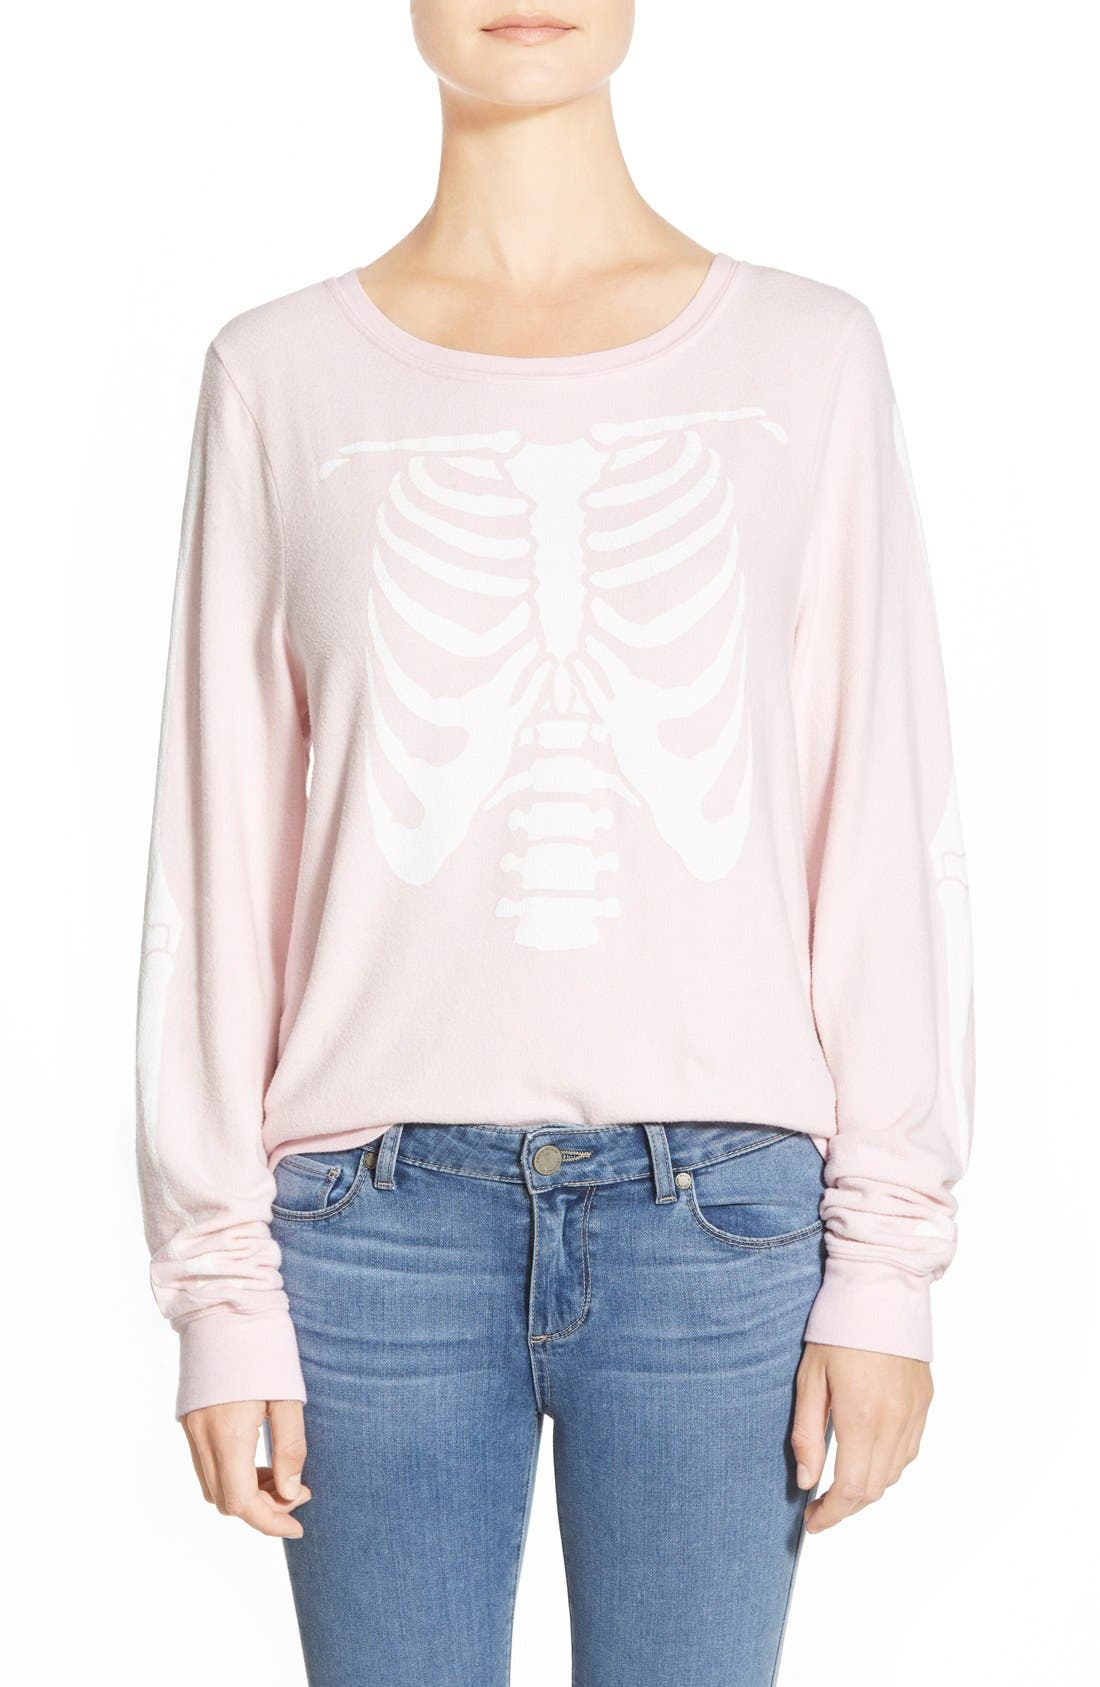 Alternate Image 1 Selected - Wildfox 'Inside Out' Long Sleeve Sweatshirt